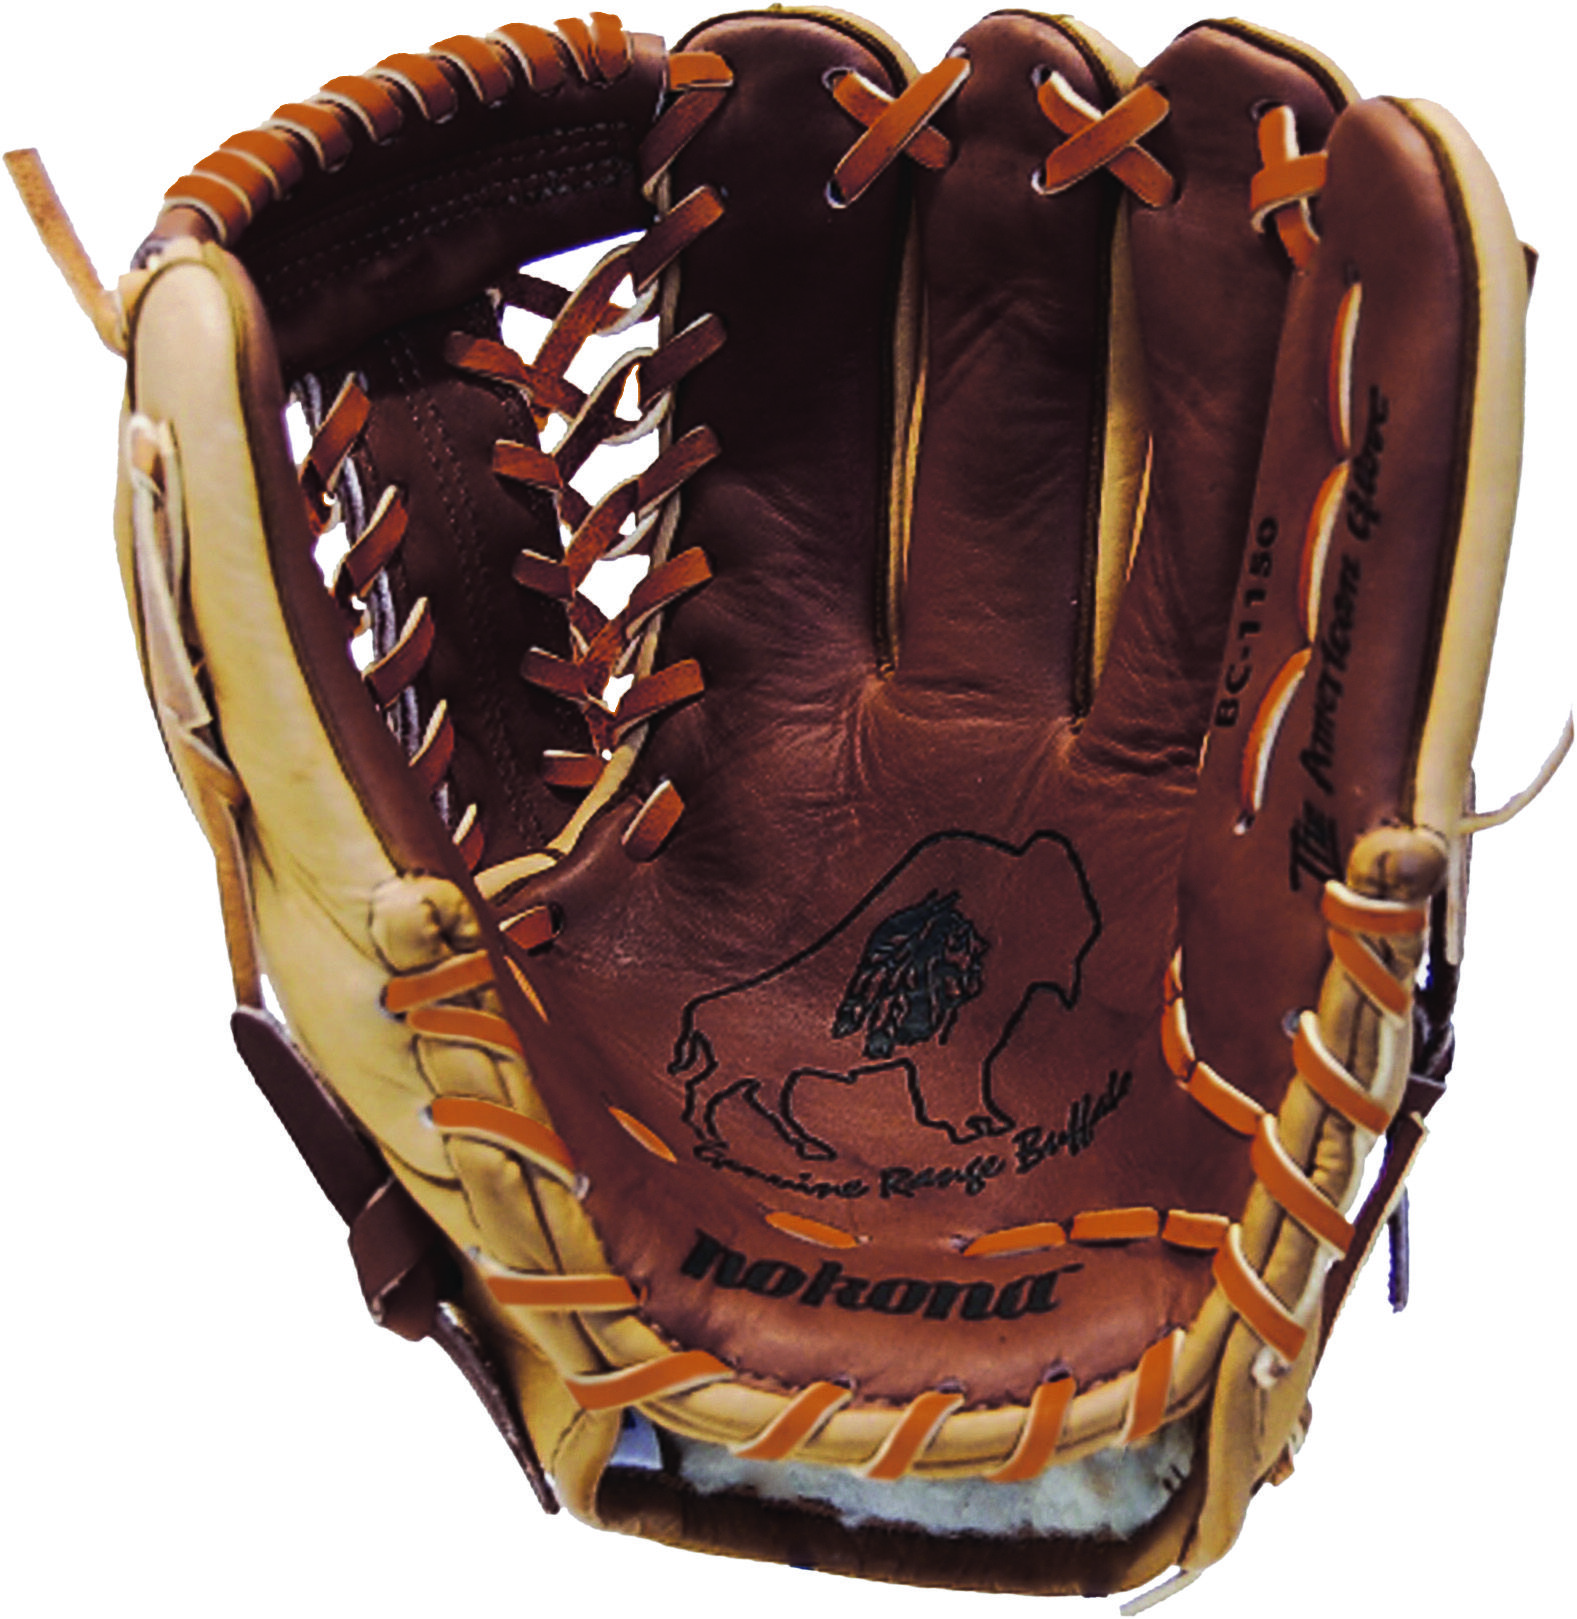 Nokona Buffalo Combo 11 5 Baseball Glove Brown Right Hand Throw Ebay Bison Leather Baseball Glove Gloves